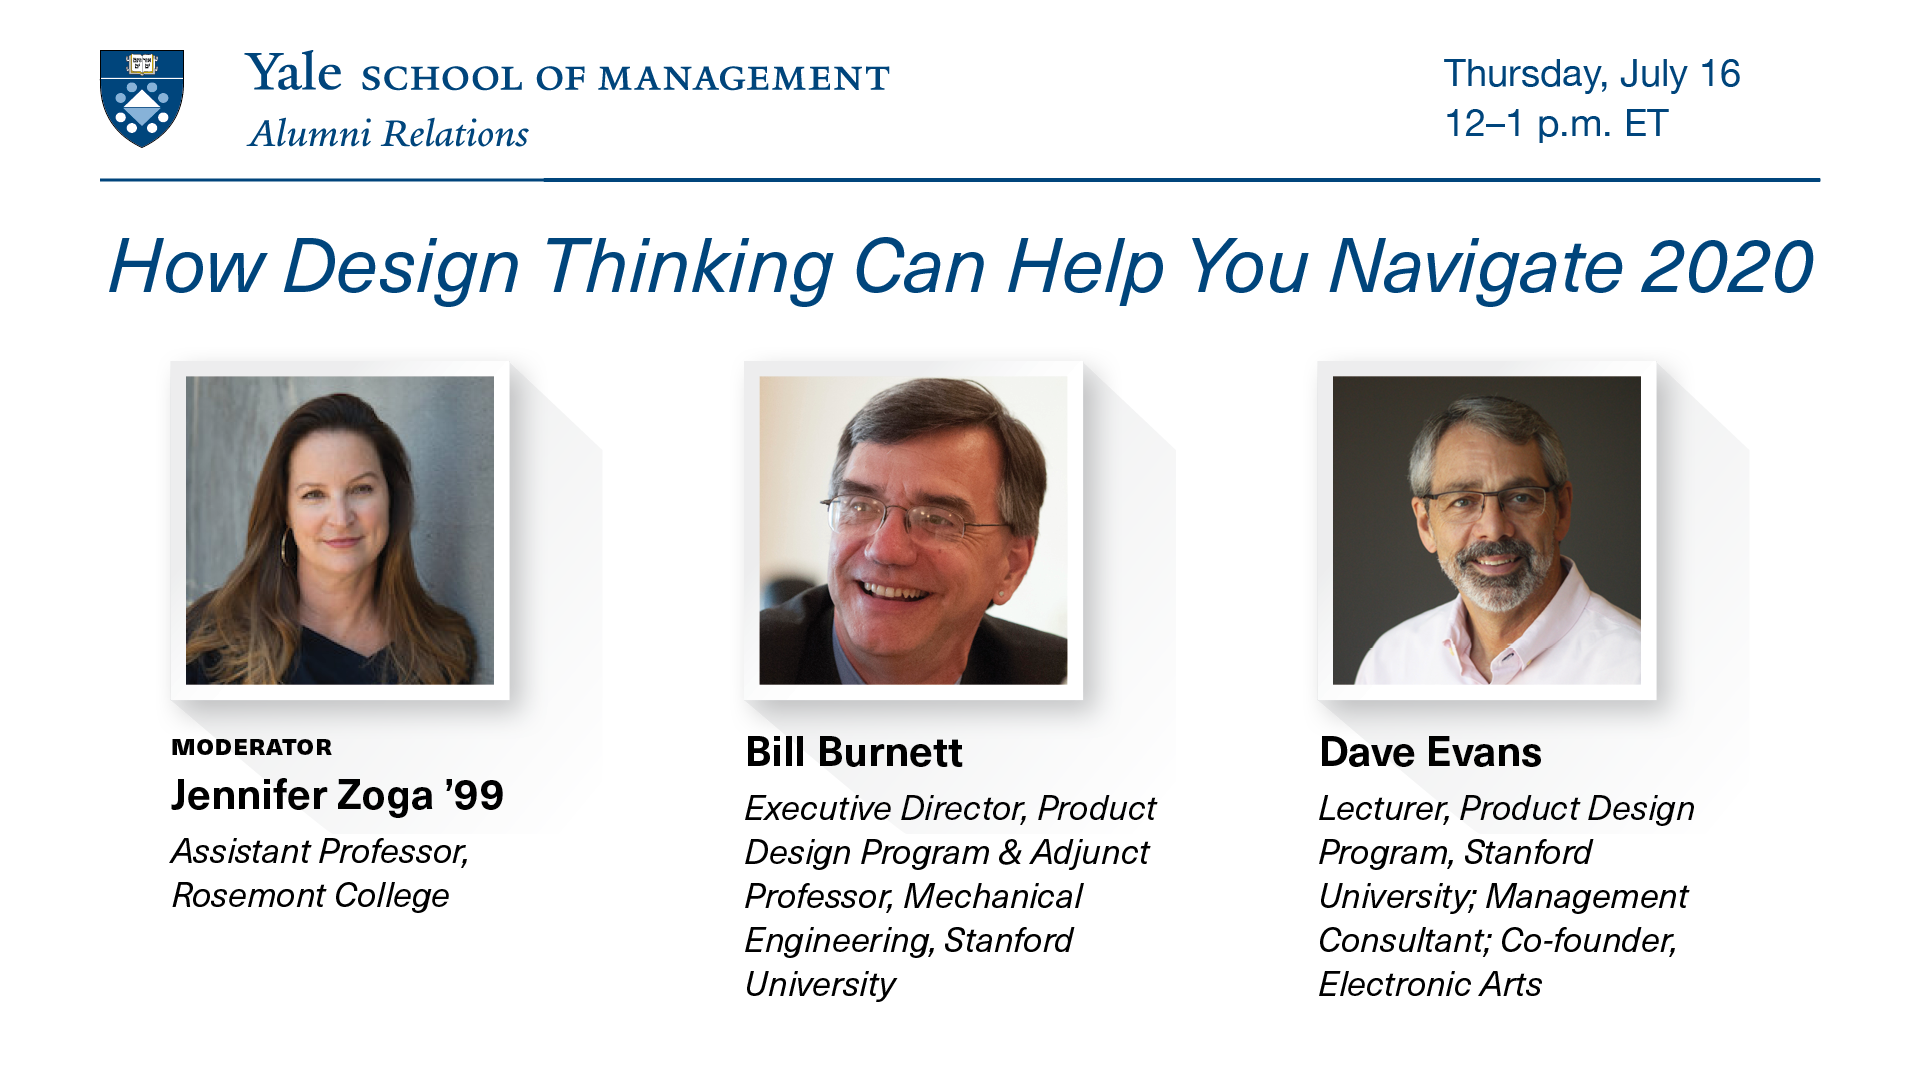 [WEBINAR] How Design Thinking Can Help You Navigate 2020